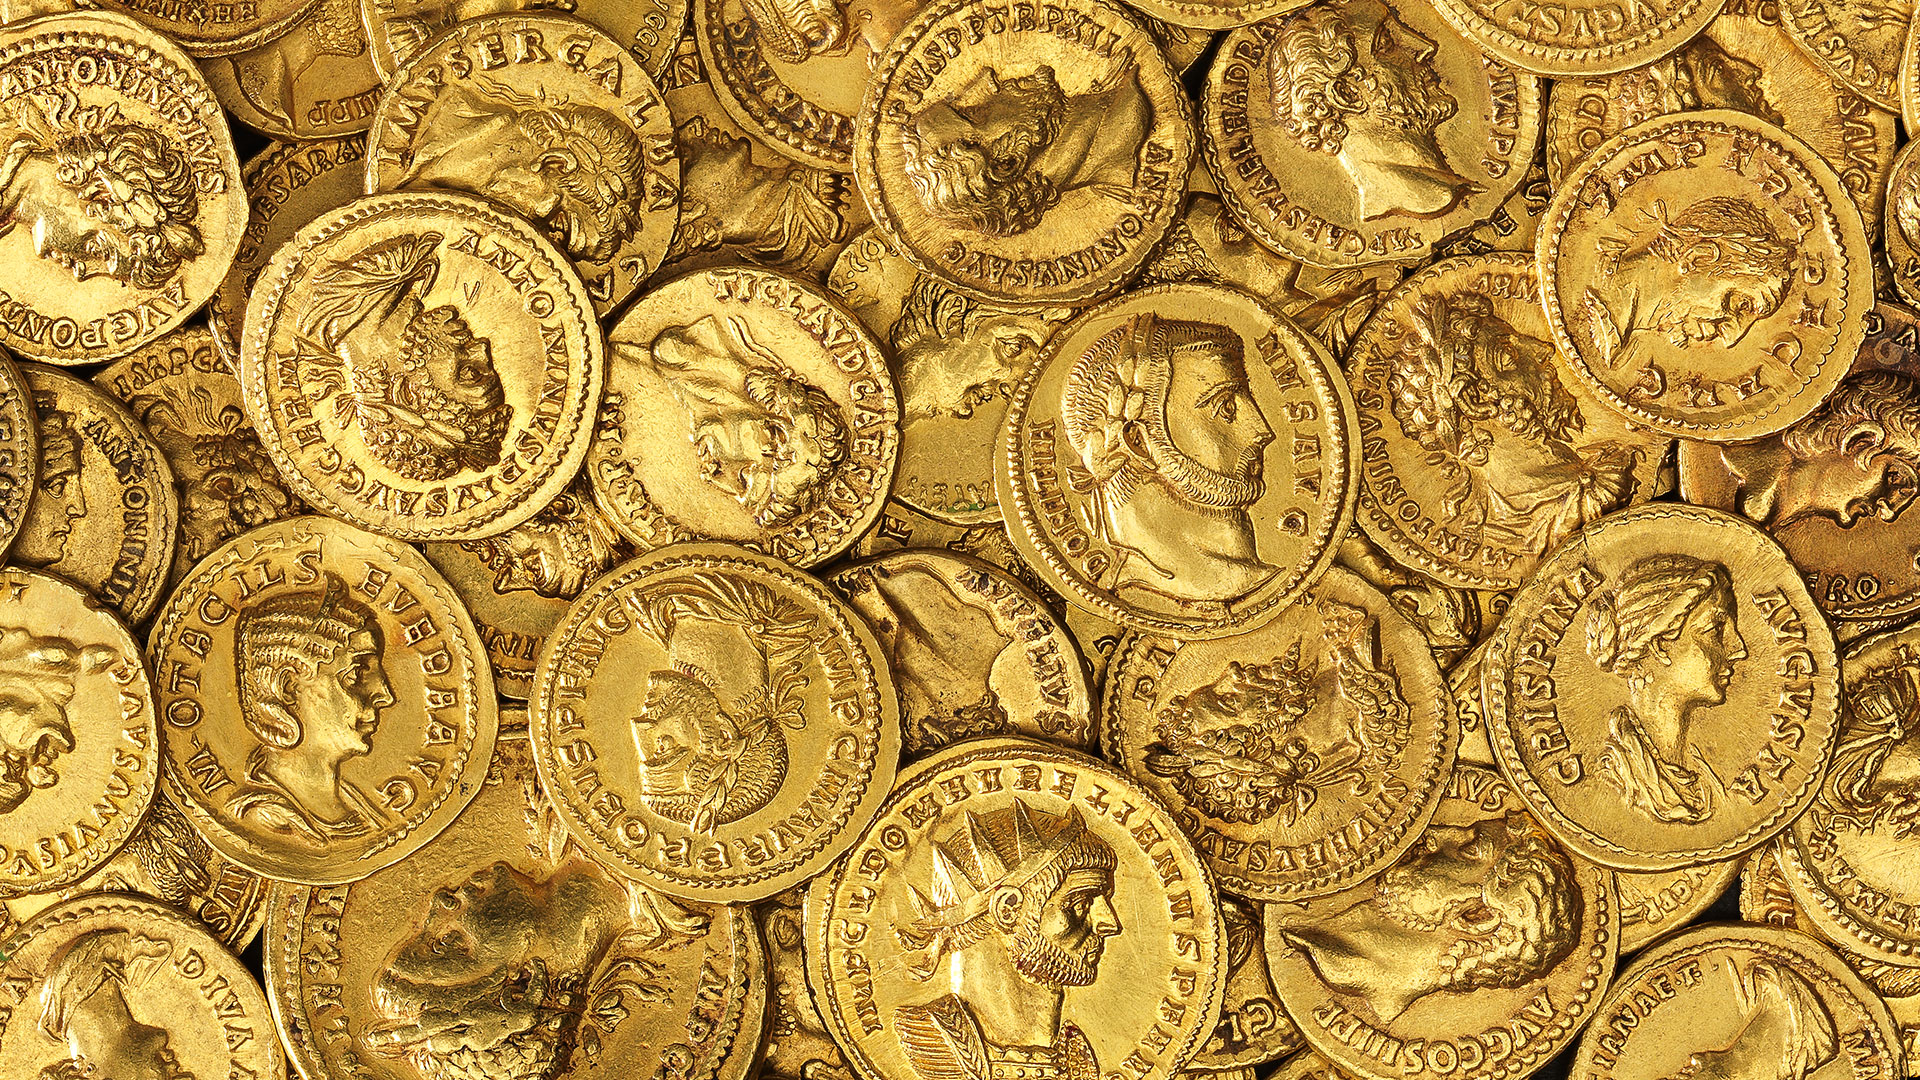 Roman Gold Coins from the Victor Adda Collection